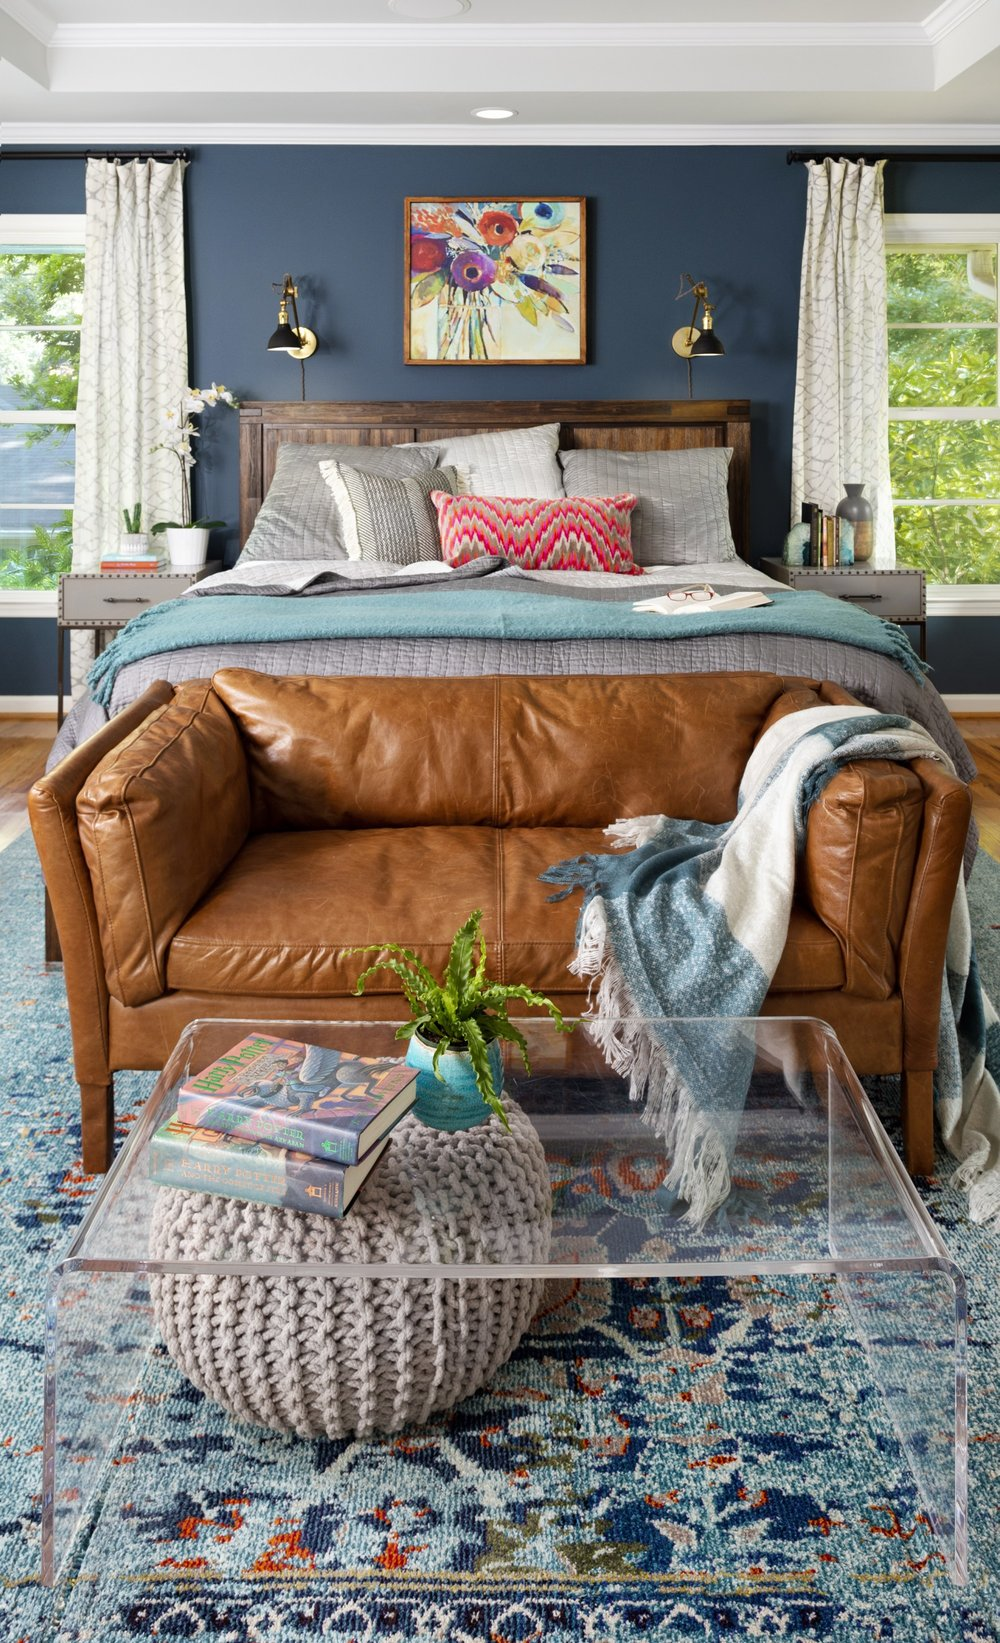 A color-saturated, comfortable, adult bedroom. Photo credit: Cati Teague Photography for GSD.